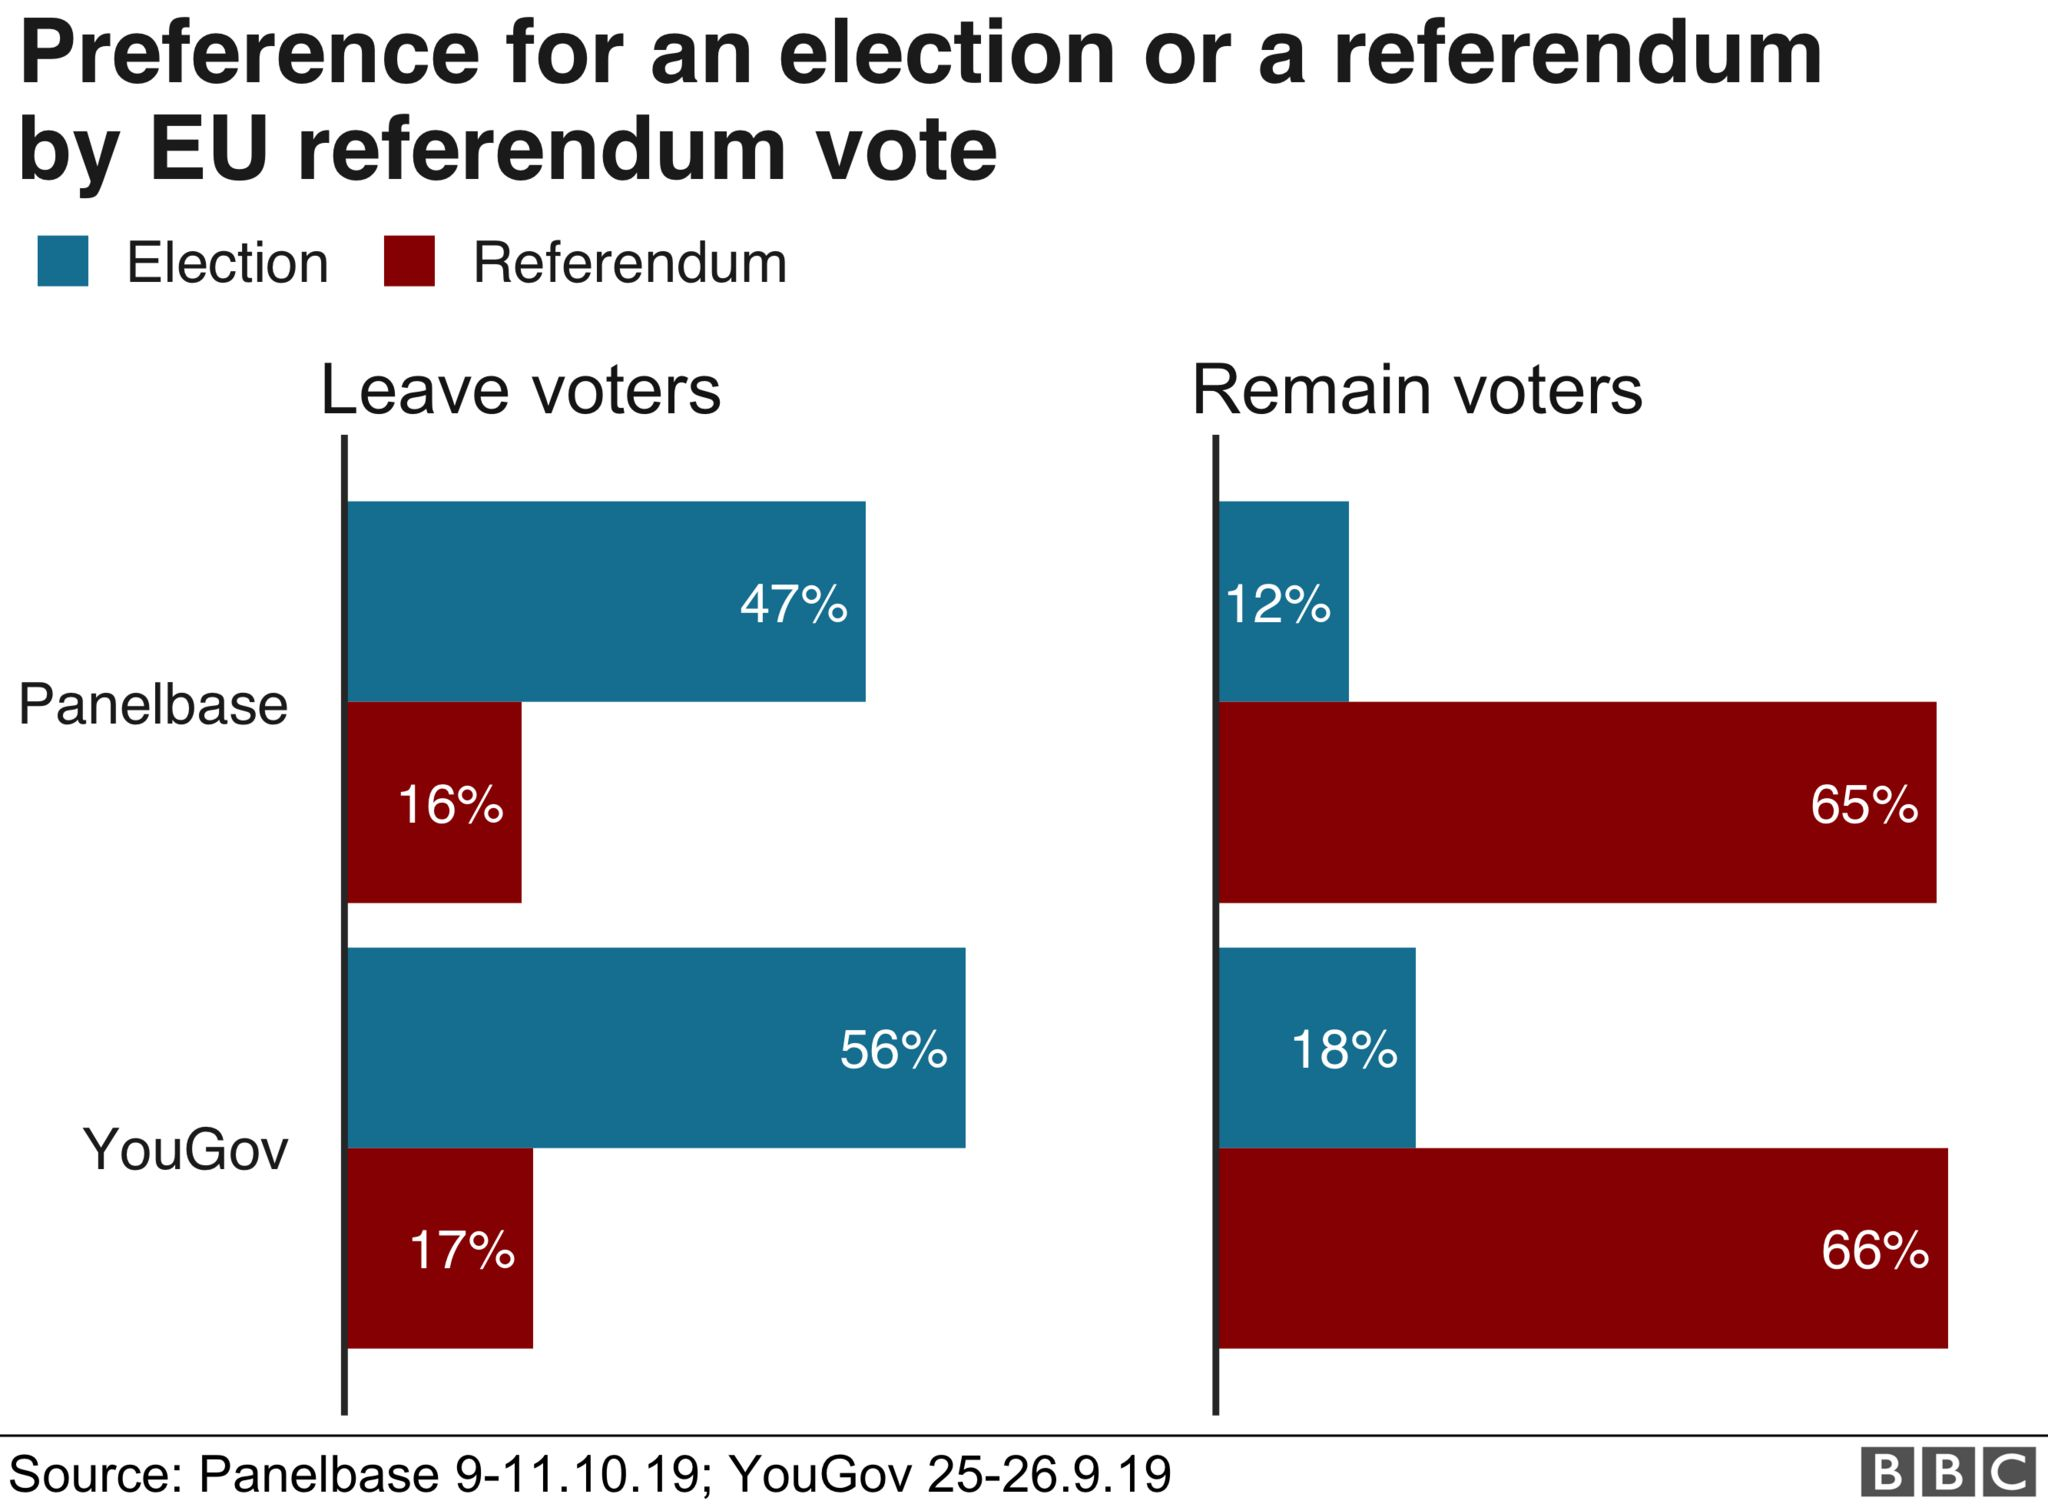 Preference for an early election or referendum by EU referendum vote